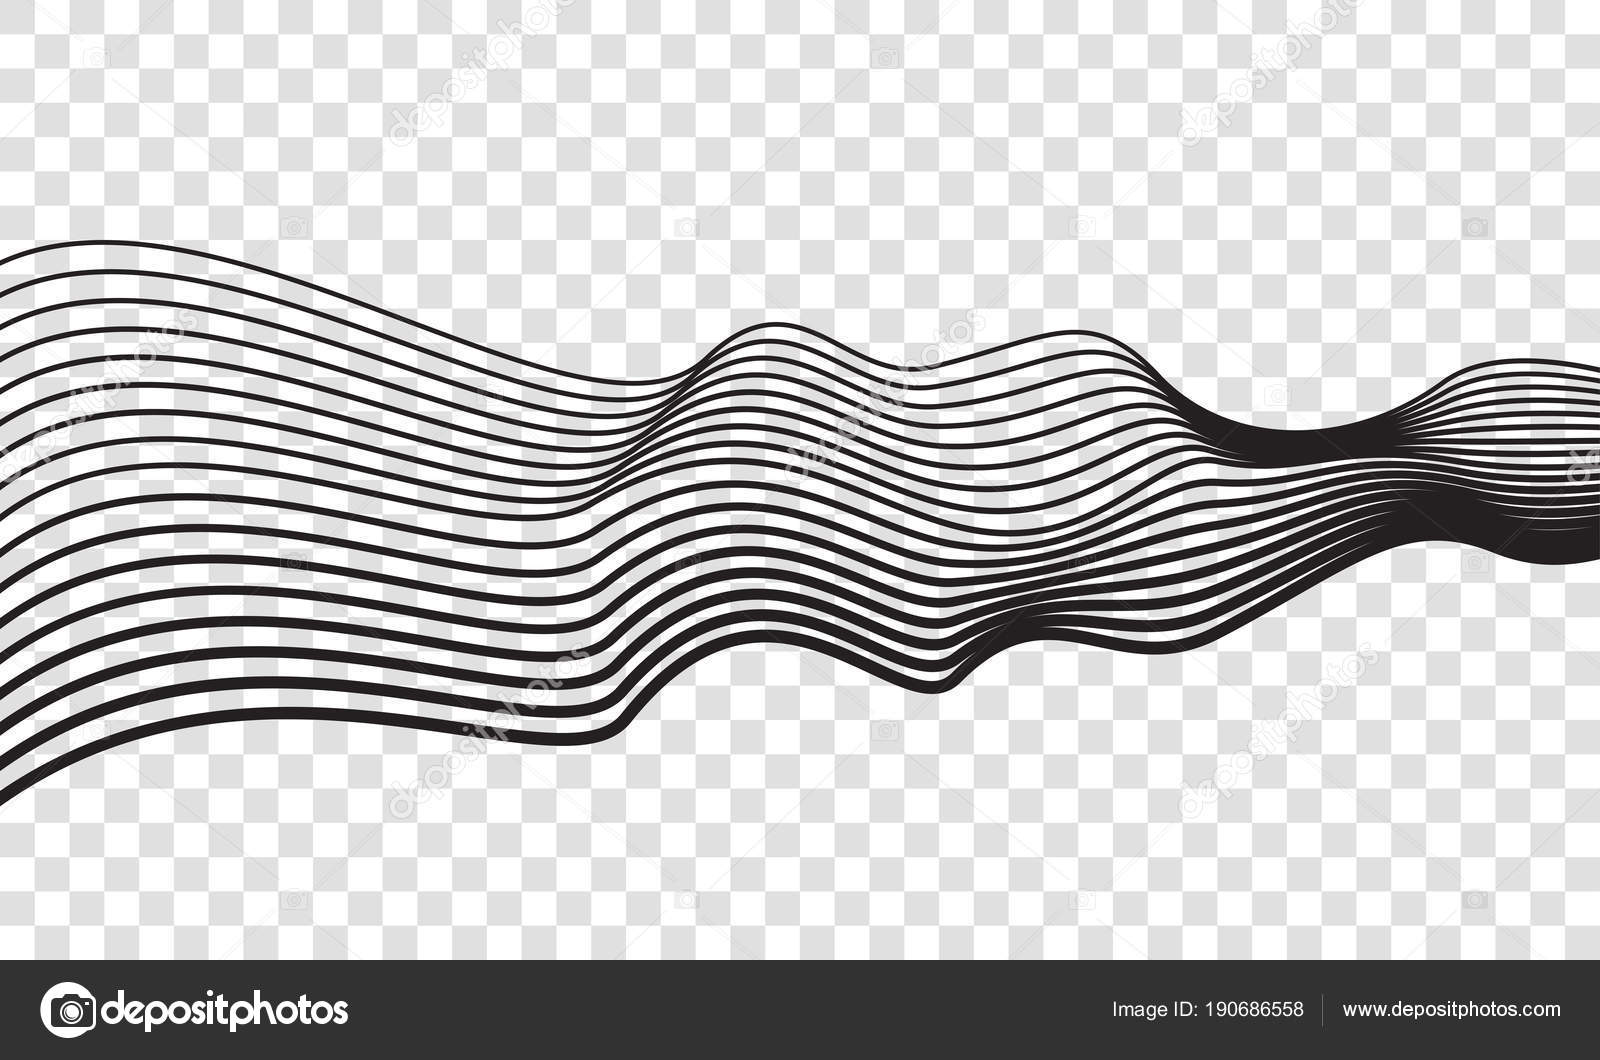 Unduh 6800 Background Art Line HD Terbaru